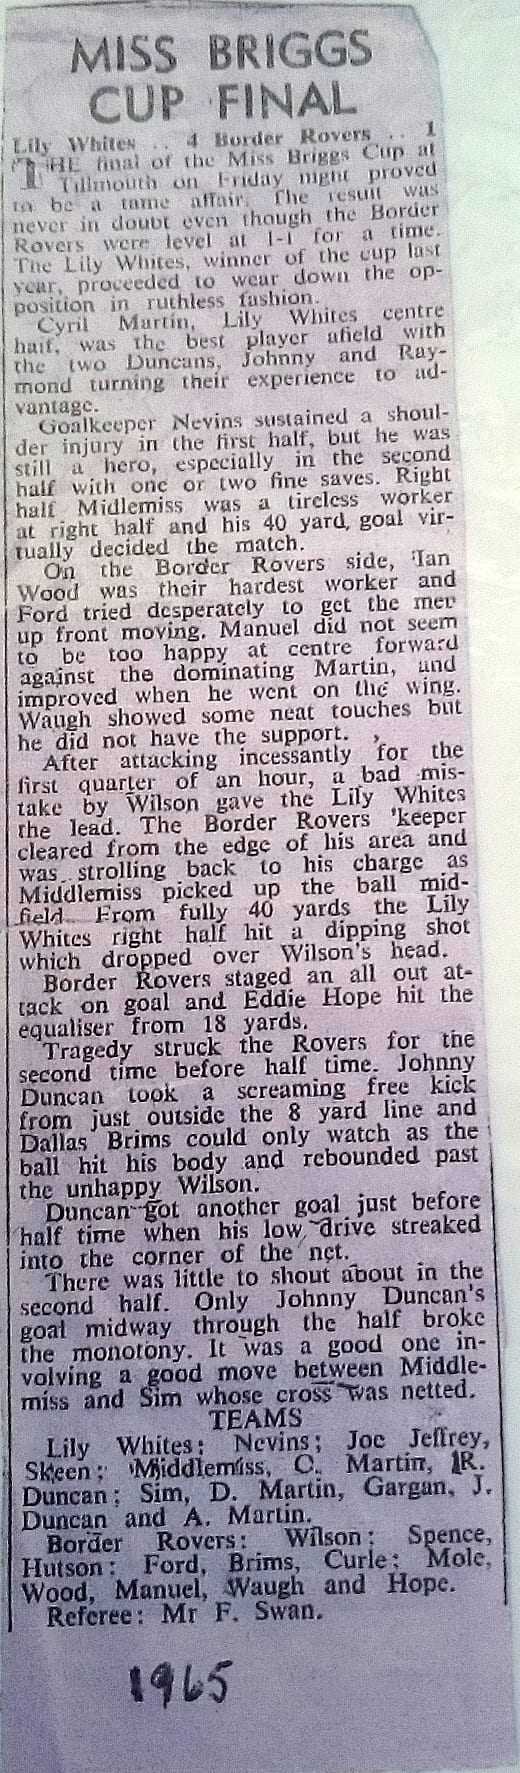 Miss Briggs Cup Tillmouth final report 1965